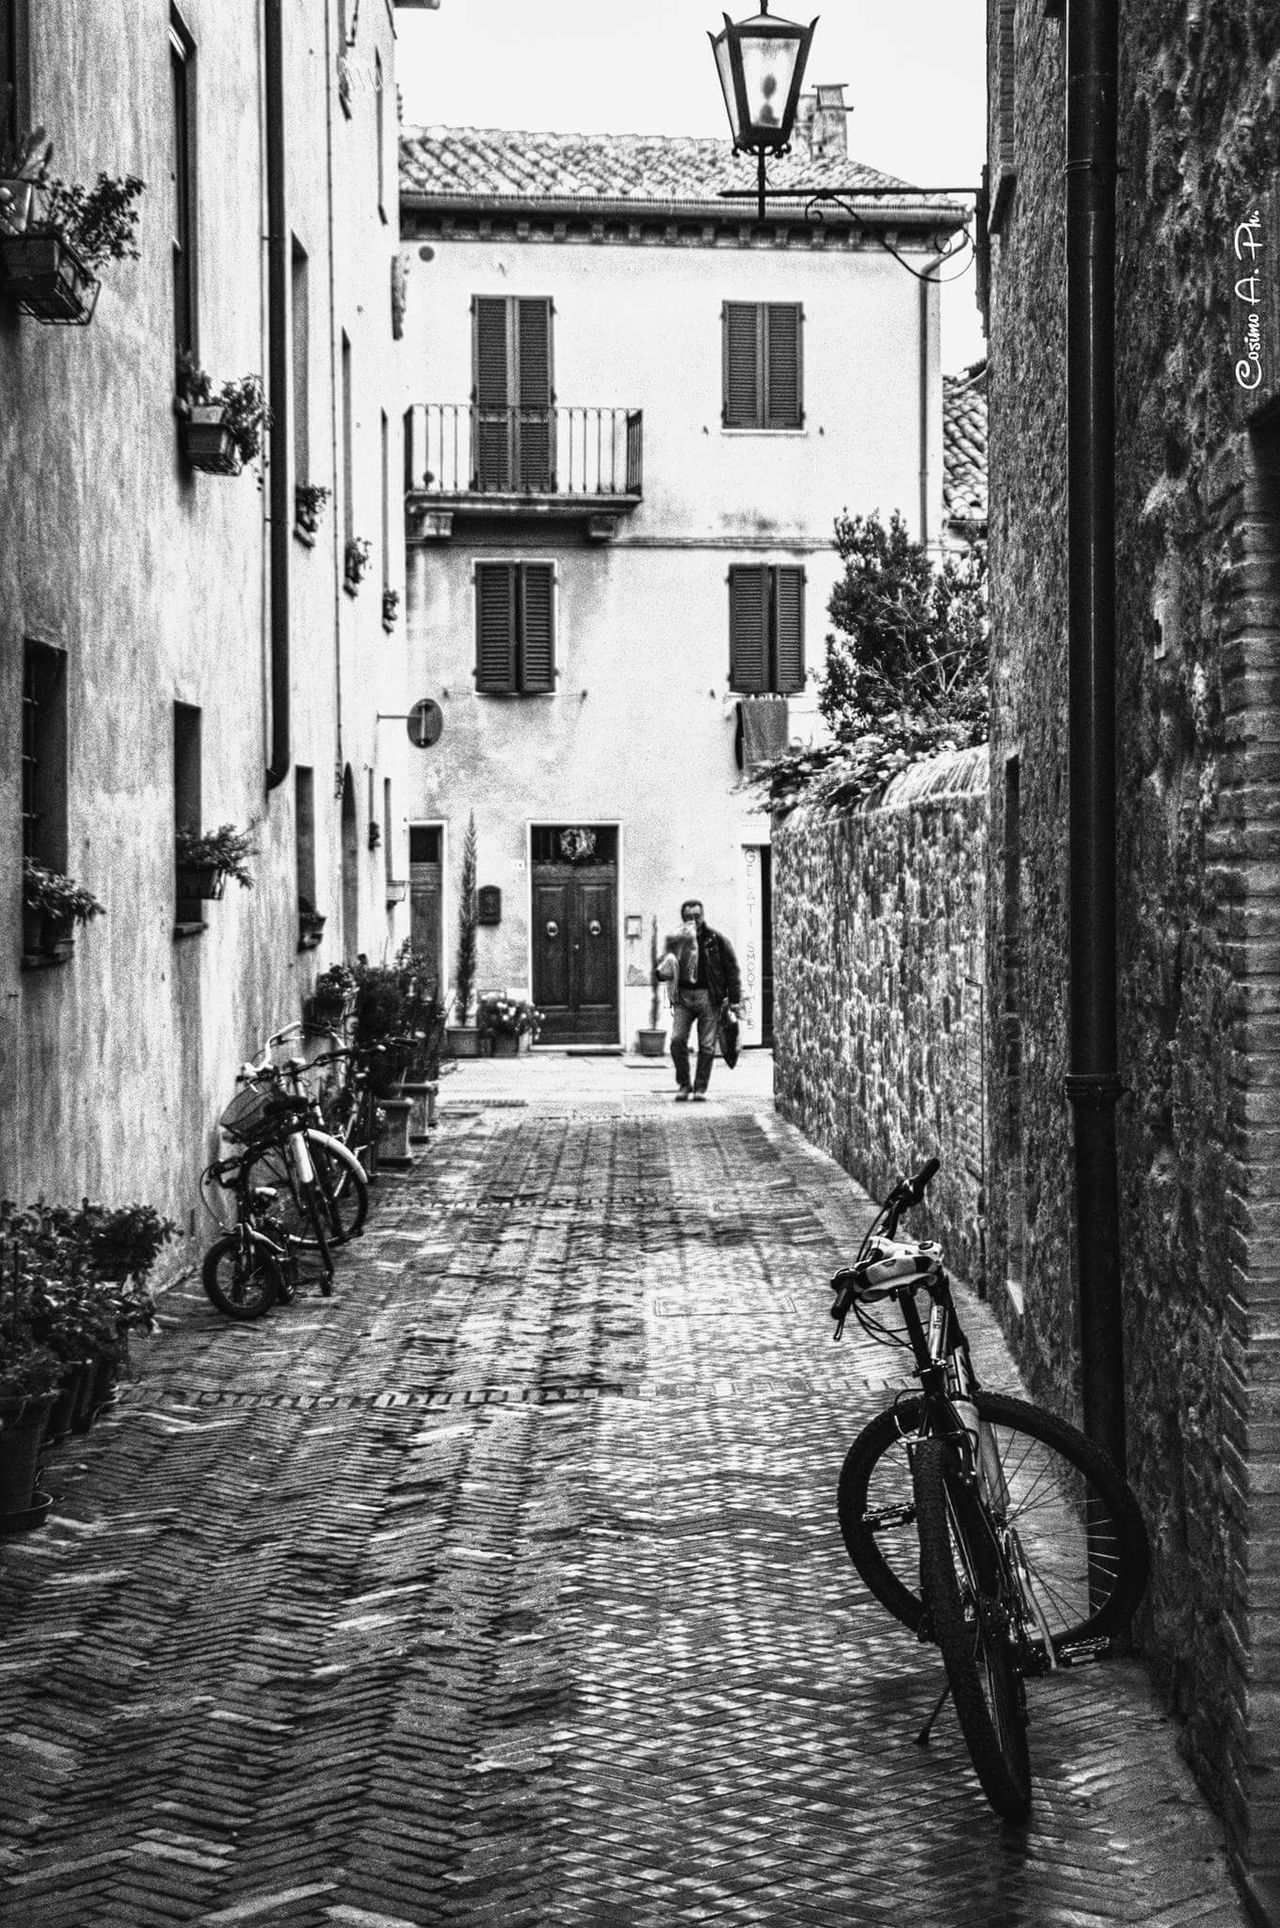 Pienza Pienza (toscana) Pienza, La Toscana Tuscany Tuscanygram Blackandwite Blancoynegro Blackandwhite Black And White Black & White Blackandwhite Photography Black&white Black Beautiful ♥ Beautiful Eyem Eyem Best Shots Eyemphotography Eyem Gallery OpenEdit Open Edit Eyemcaptured Eyem Best Edits Eyembestshots Eyemphotos Open Edit For Everyone